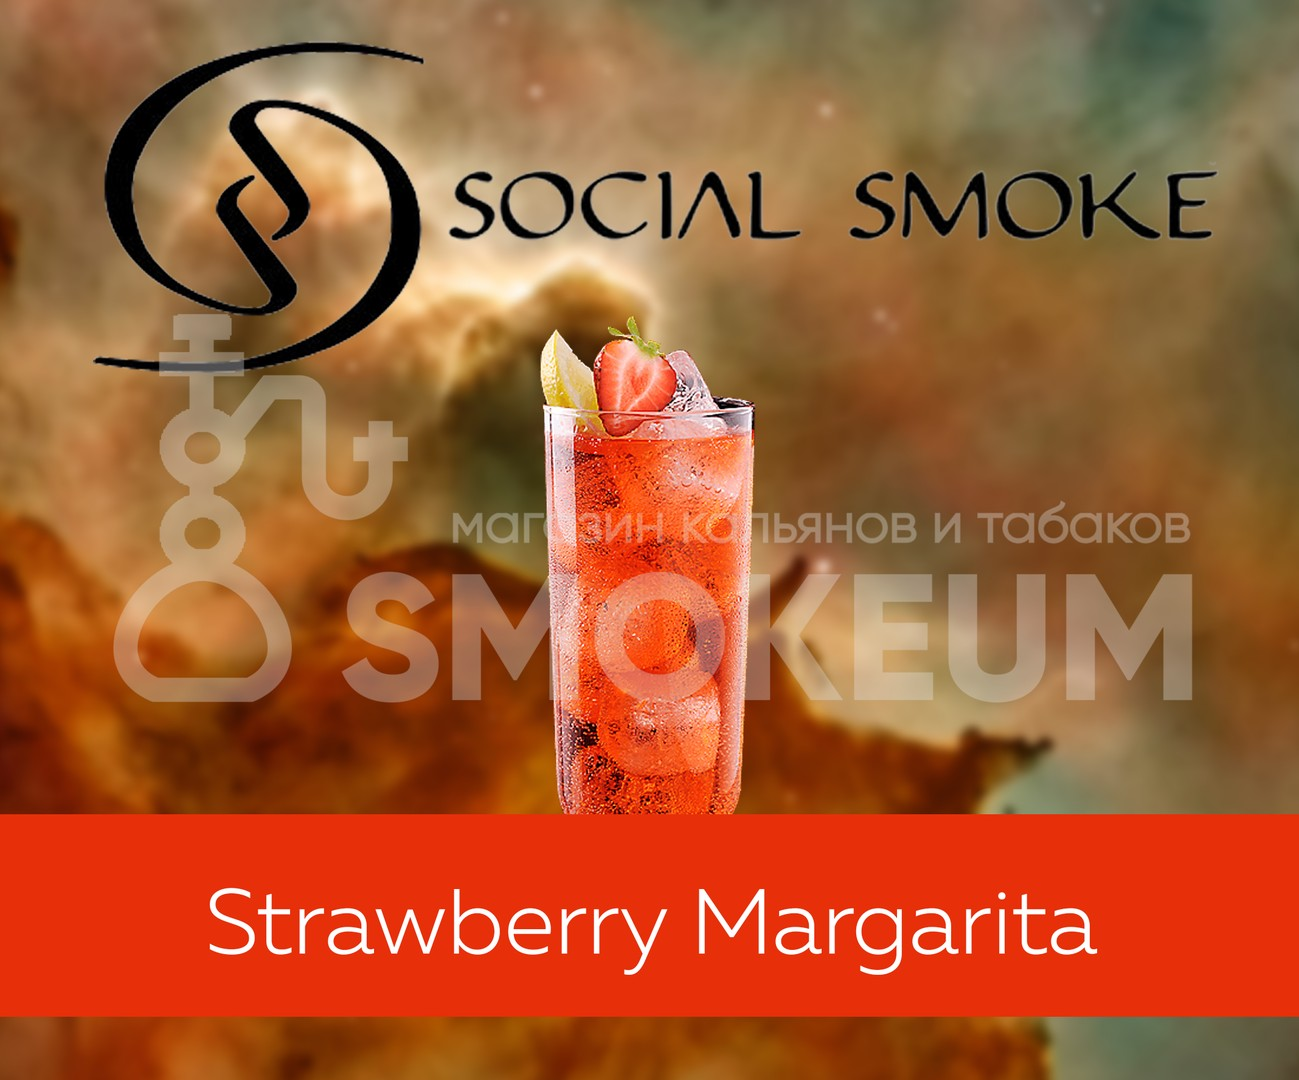 Табак Social Smoke - Strawberry Margarita (Клубничная Маргарита) 250 гр